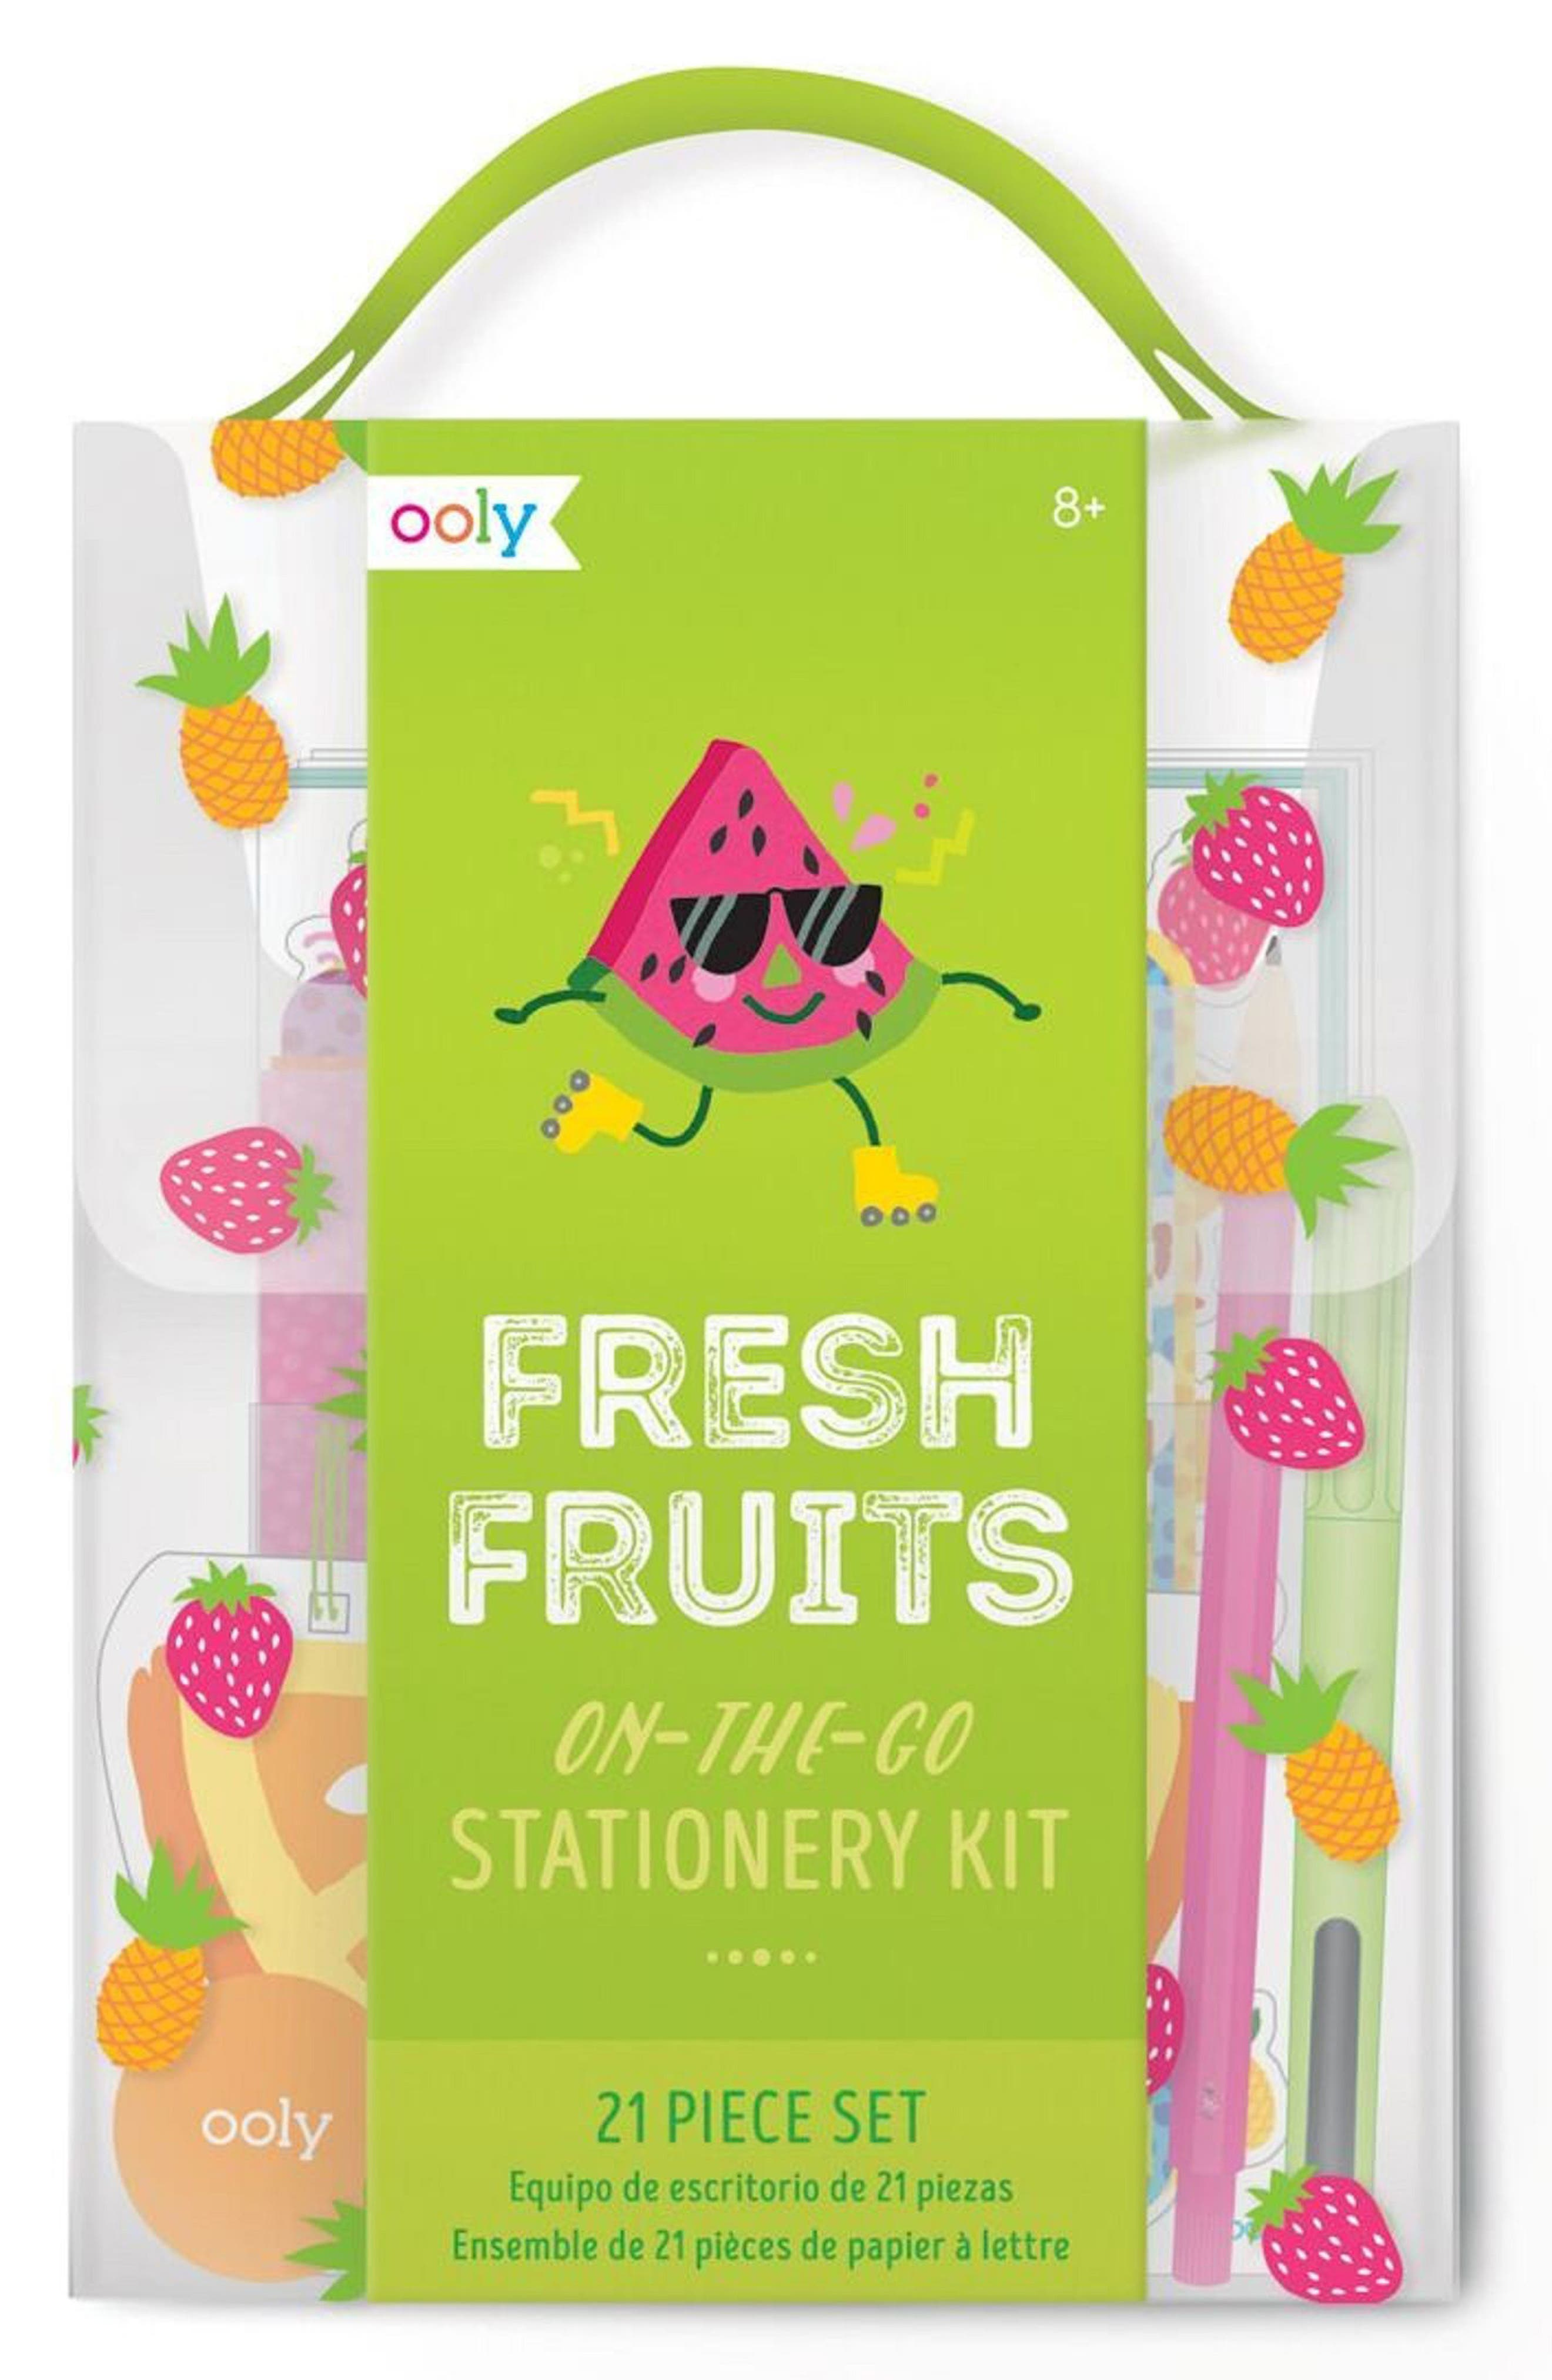 Ooly Fresh Fruit Travel Stationary Kit,                             Main thumbnail 1, color,                             300